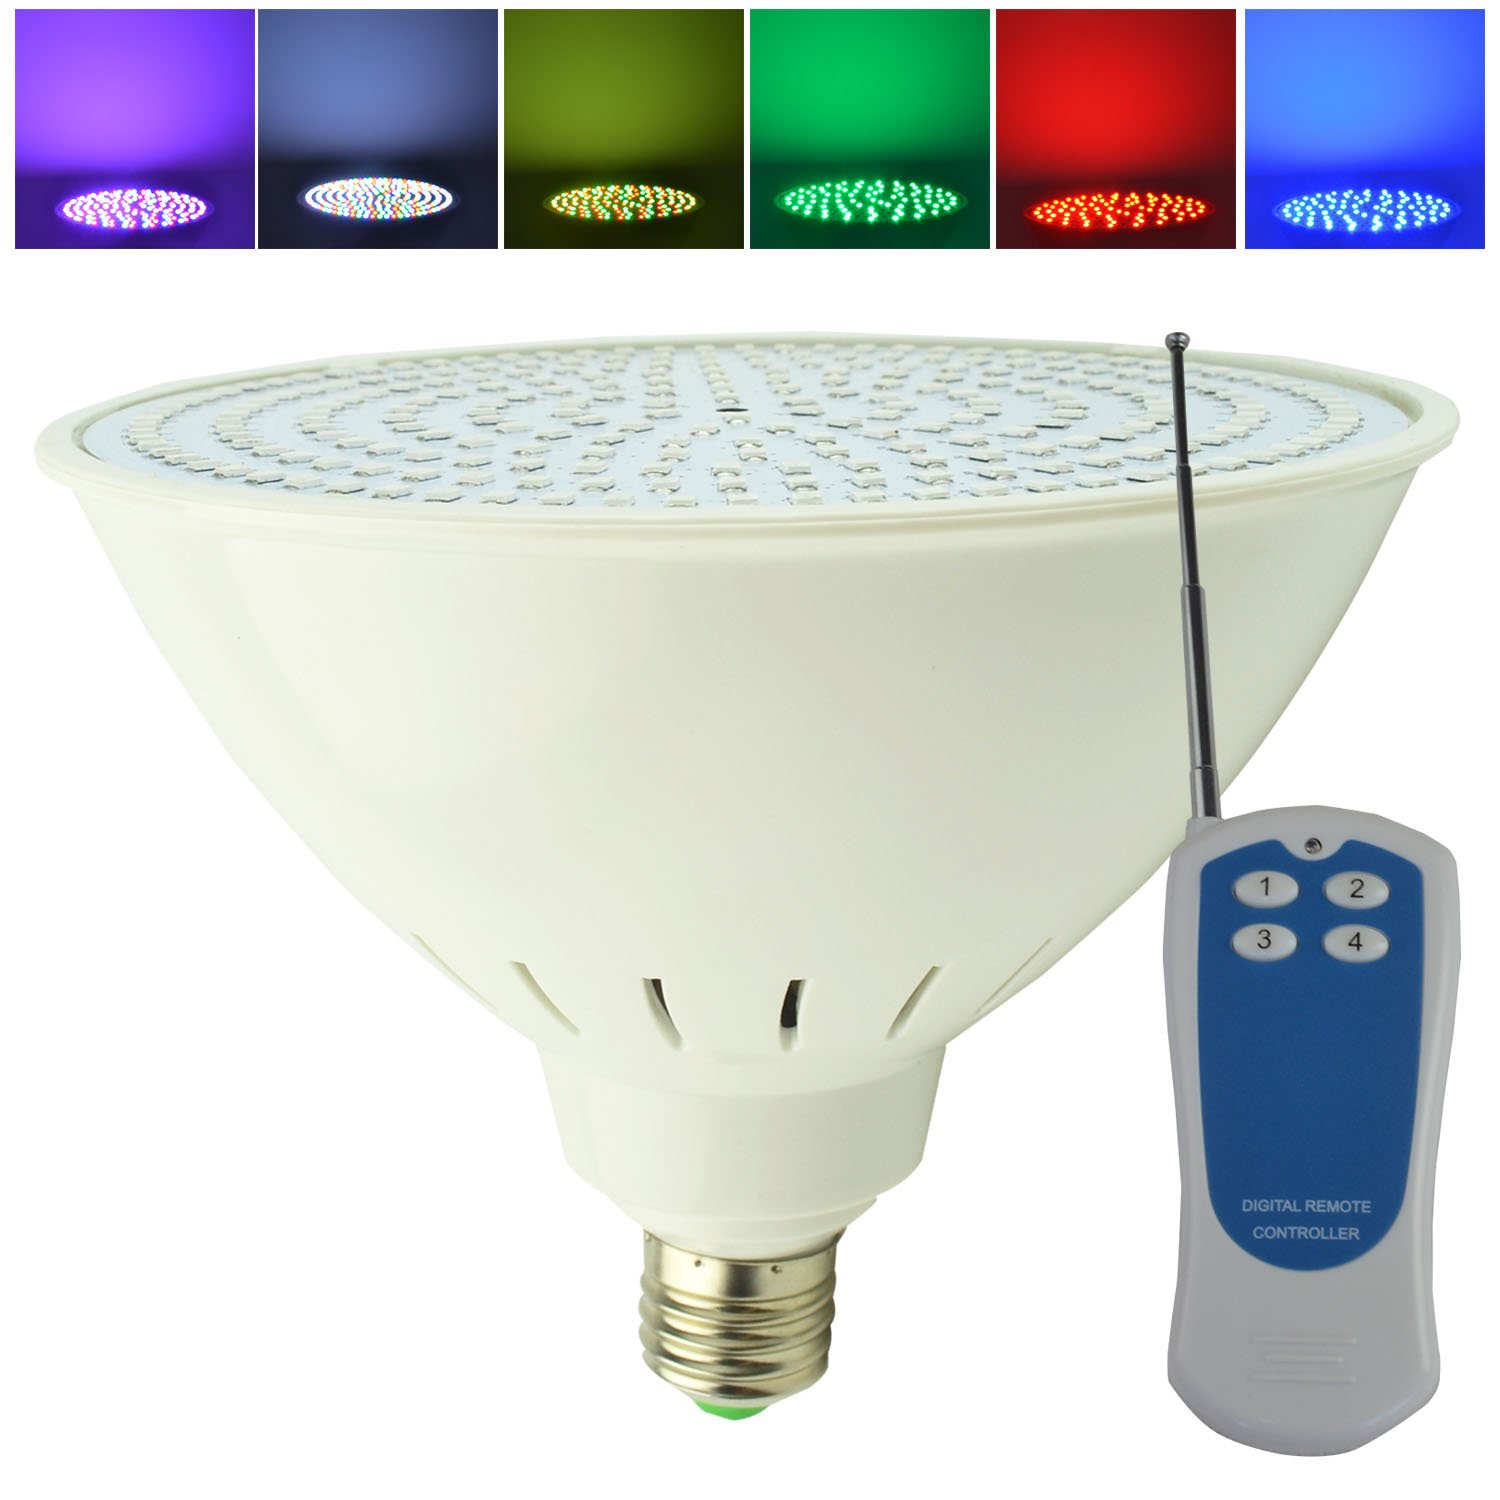 Aliyeah 35W PAR56 E27 RGB Color Changing LED Inground Pool Light with Remote 300-500W Incandescent Bulb Replacement for Pentair Hayward Light Fixture (switch control + remote control ) (120V)